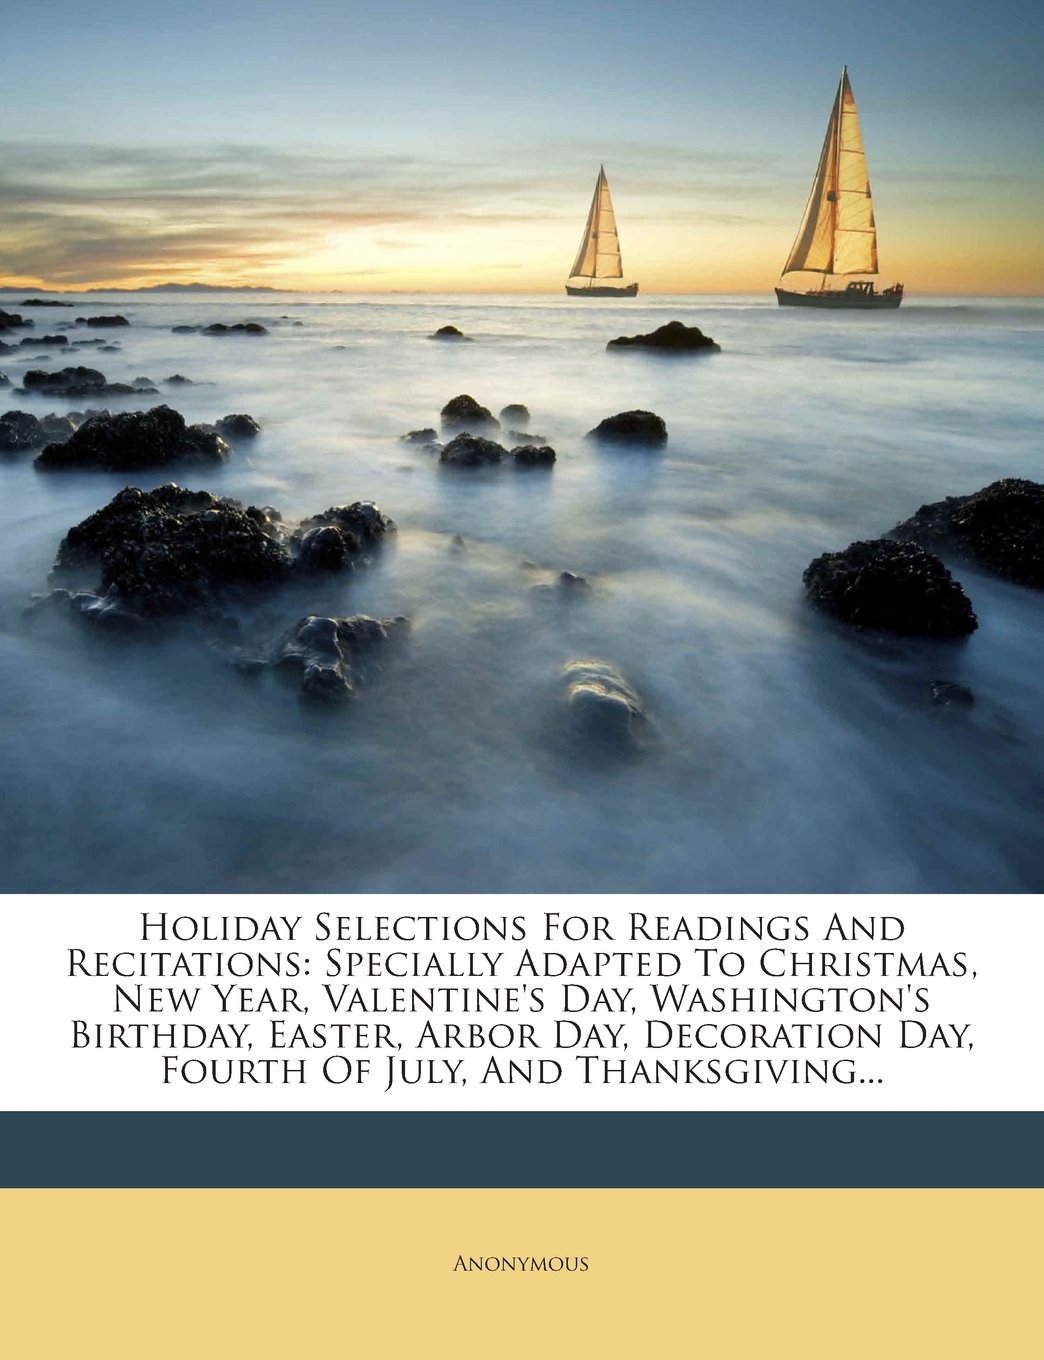 Download Holiday Selections For Readings And Recitations: Specially Adapted To Christmas, New Year, Valentine's Day, Washington's Birthday, Easter, Arbor Day, ... Day, Fourth Of July, And Thanksgiving... ebook